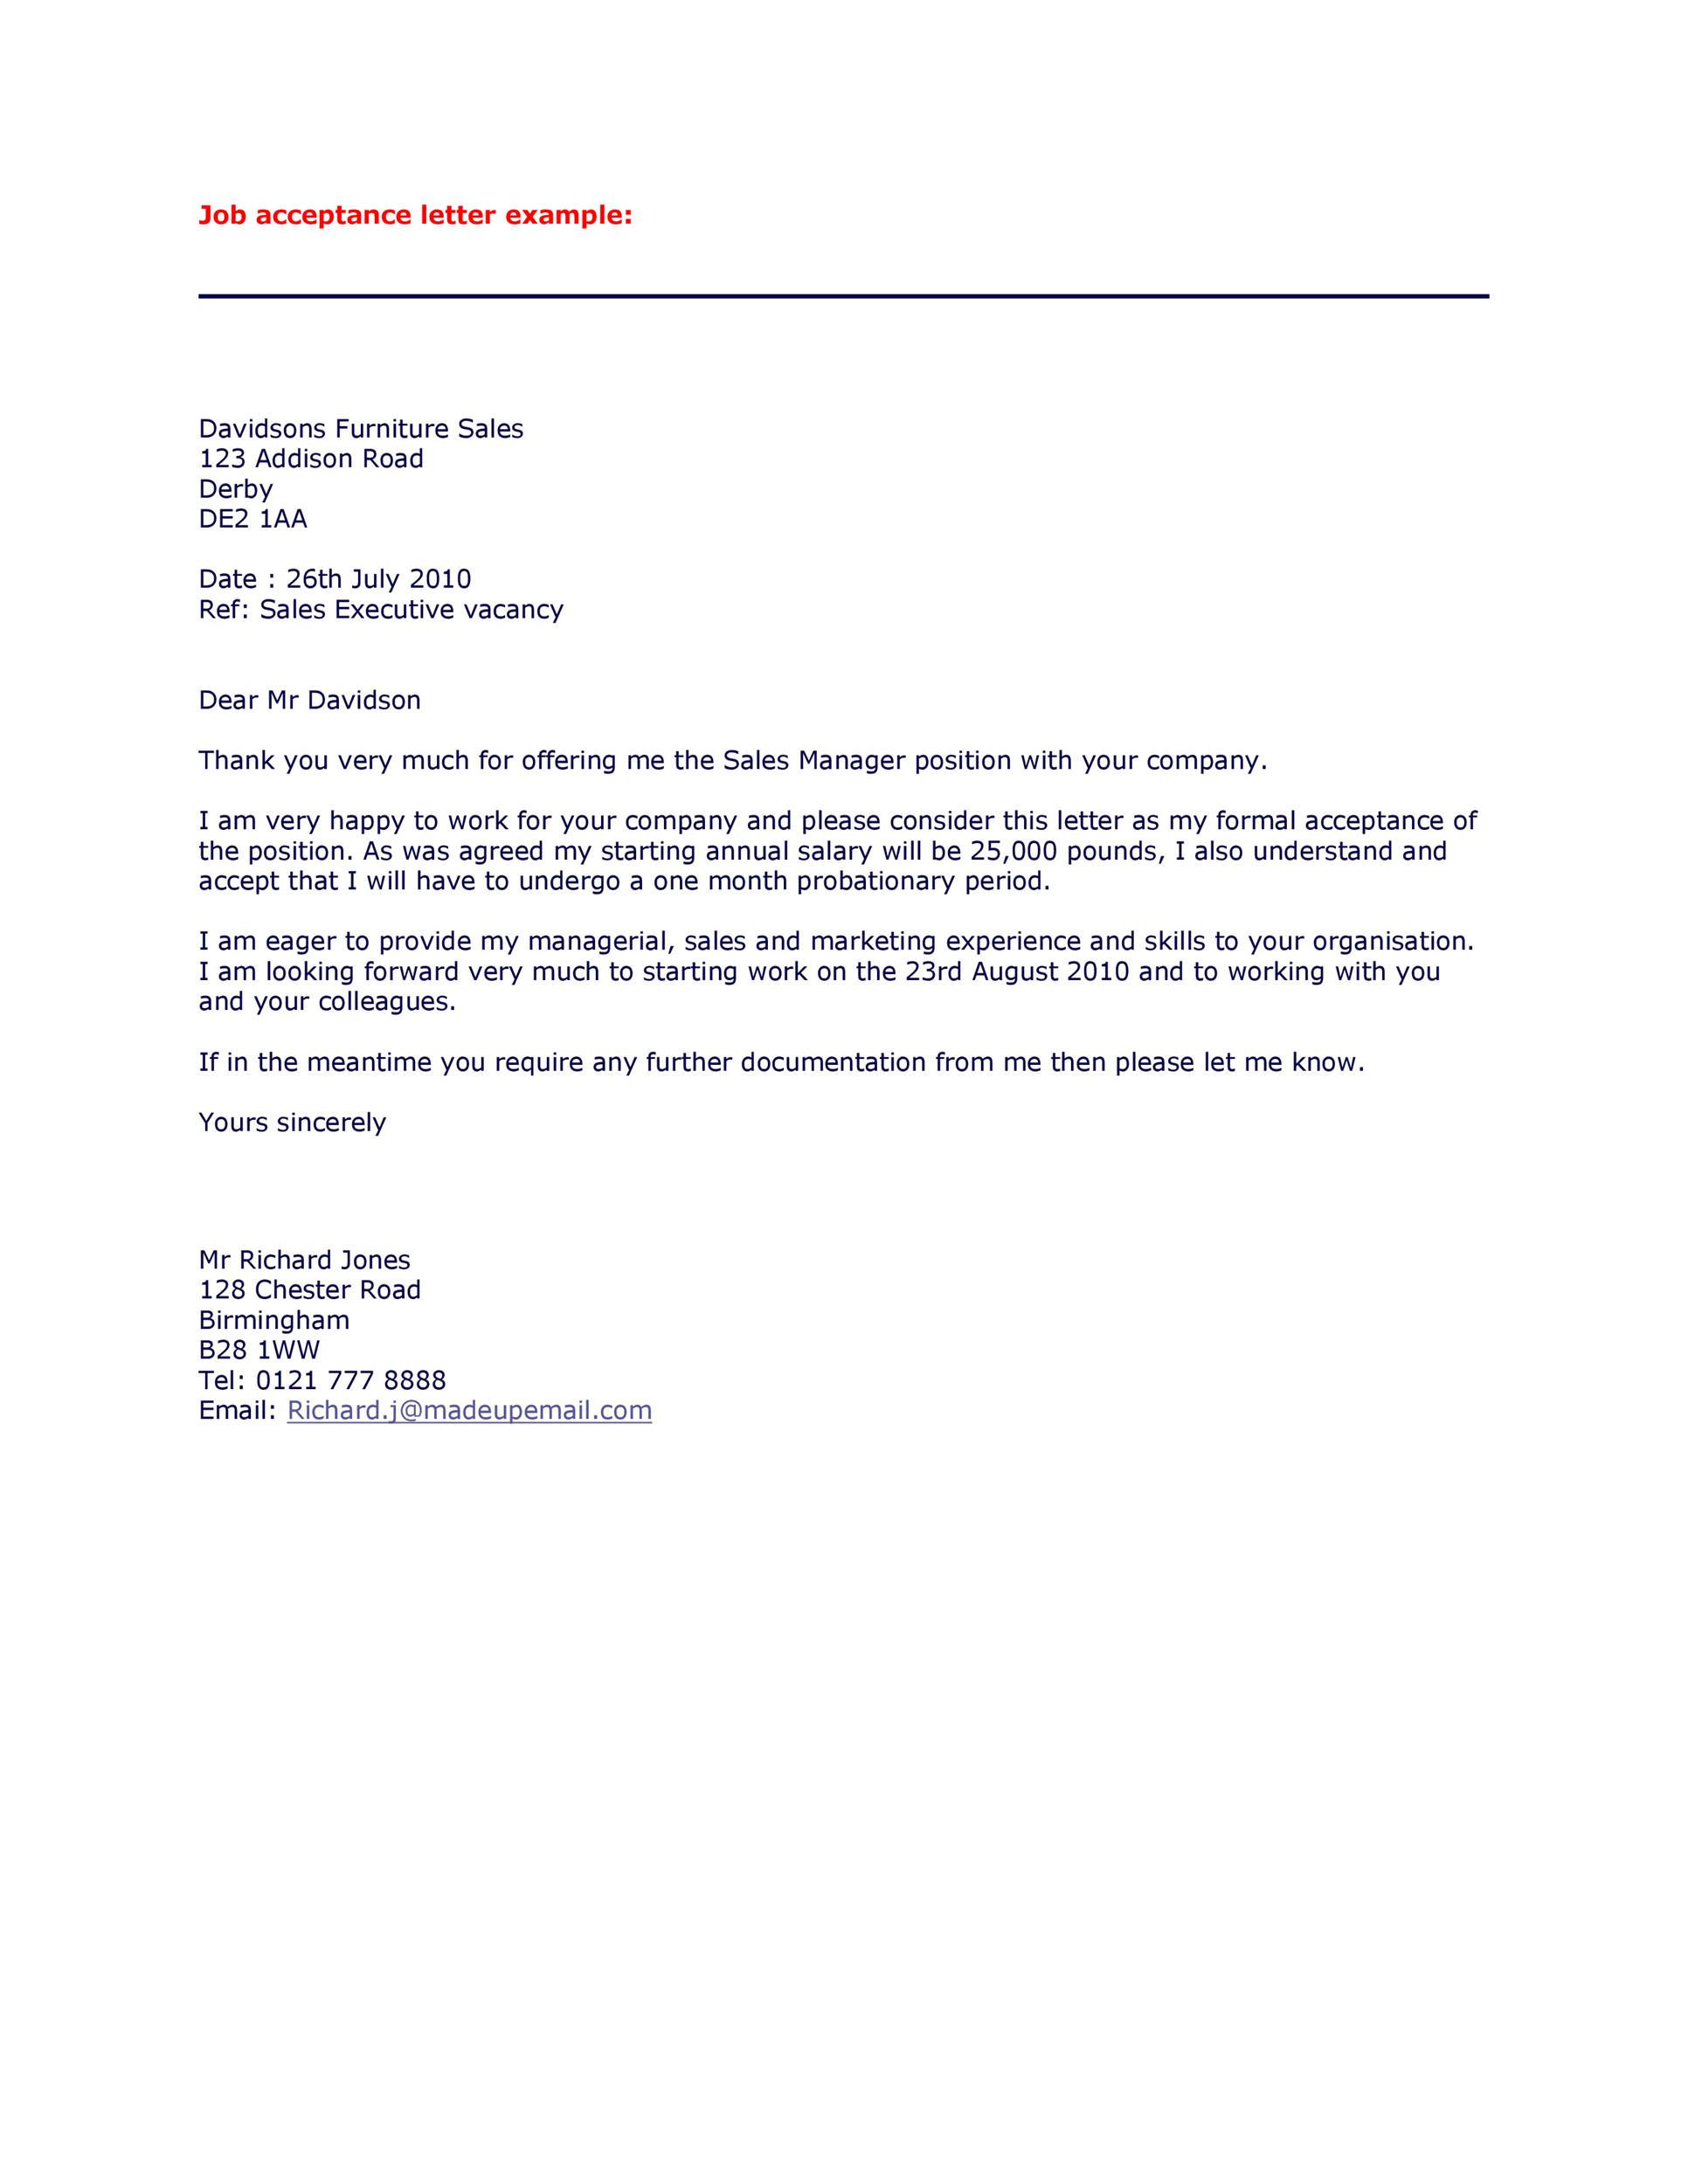 Offer Letter Email Template from templatelab.com